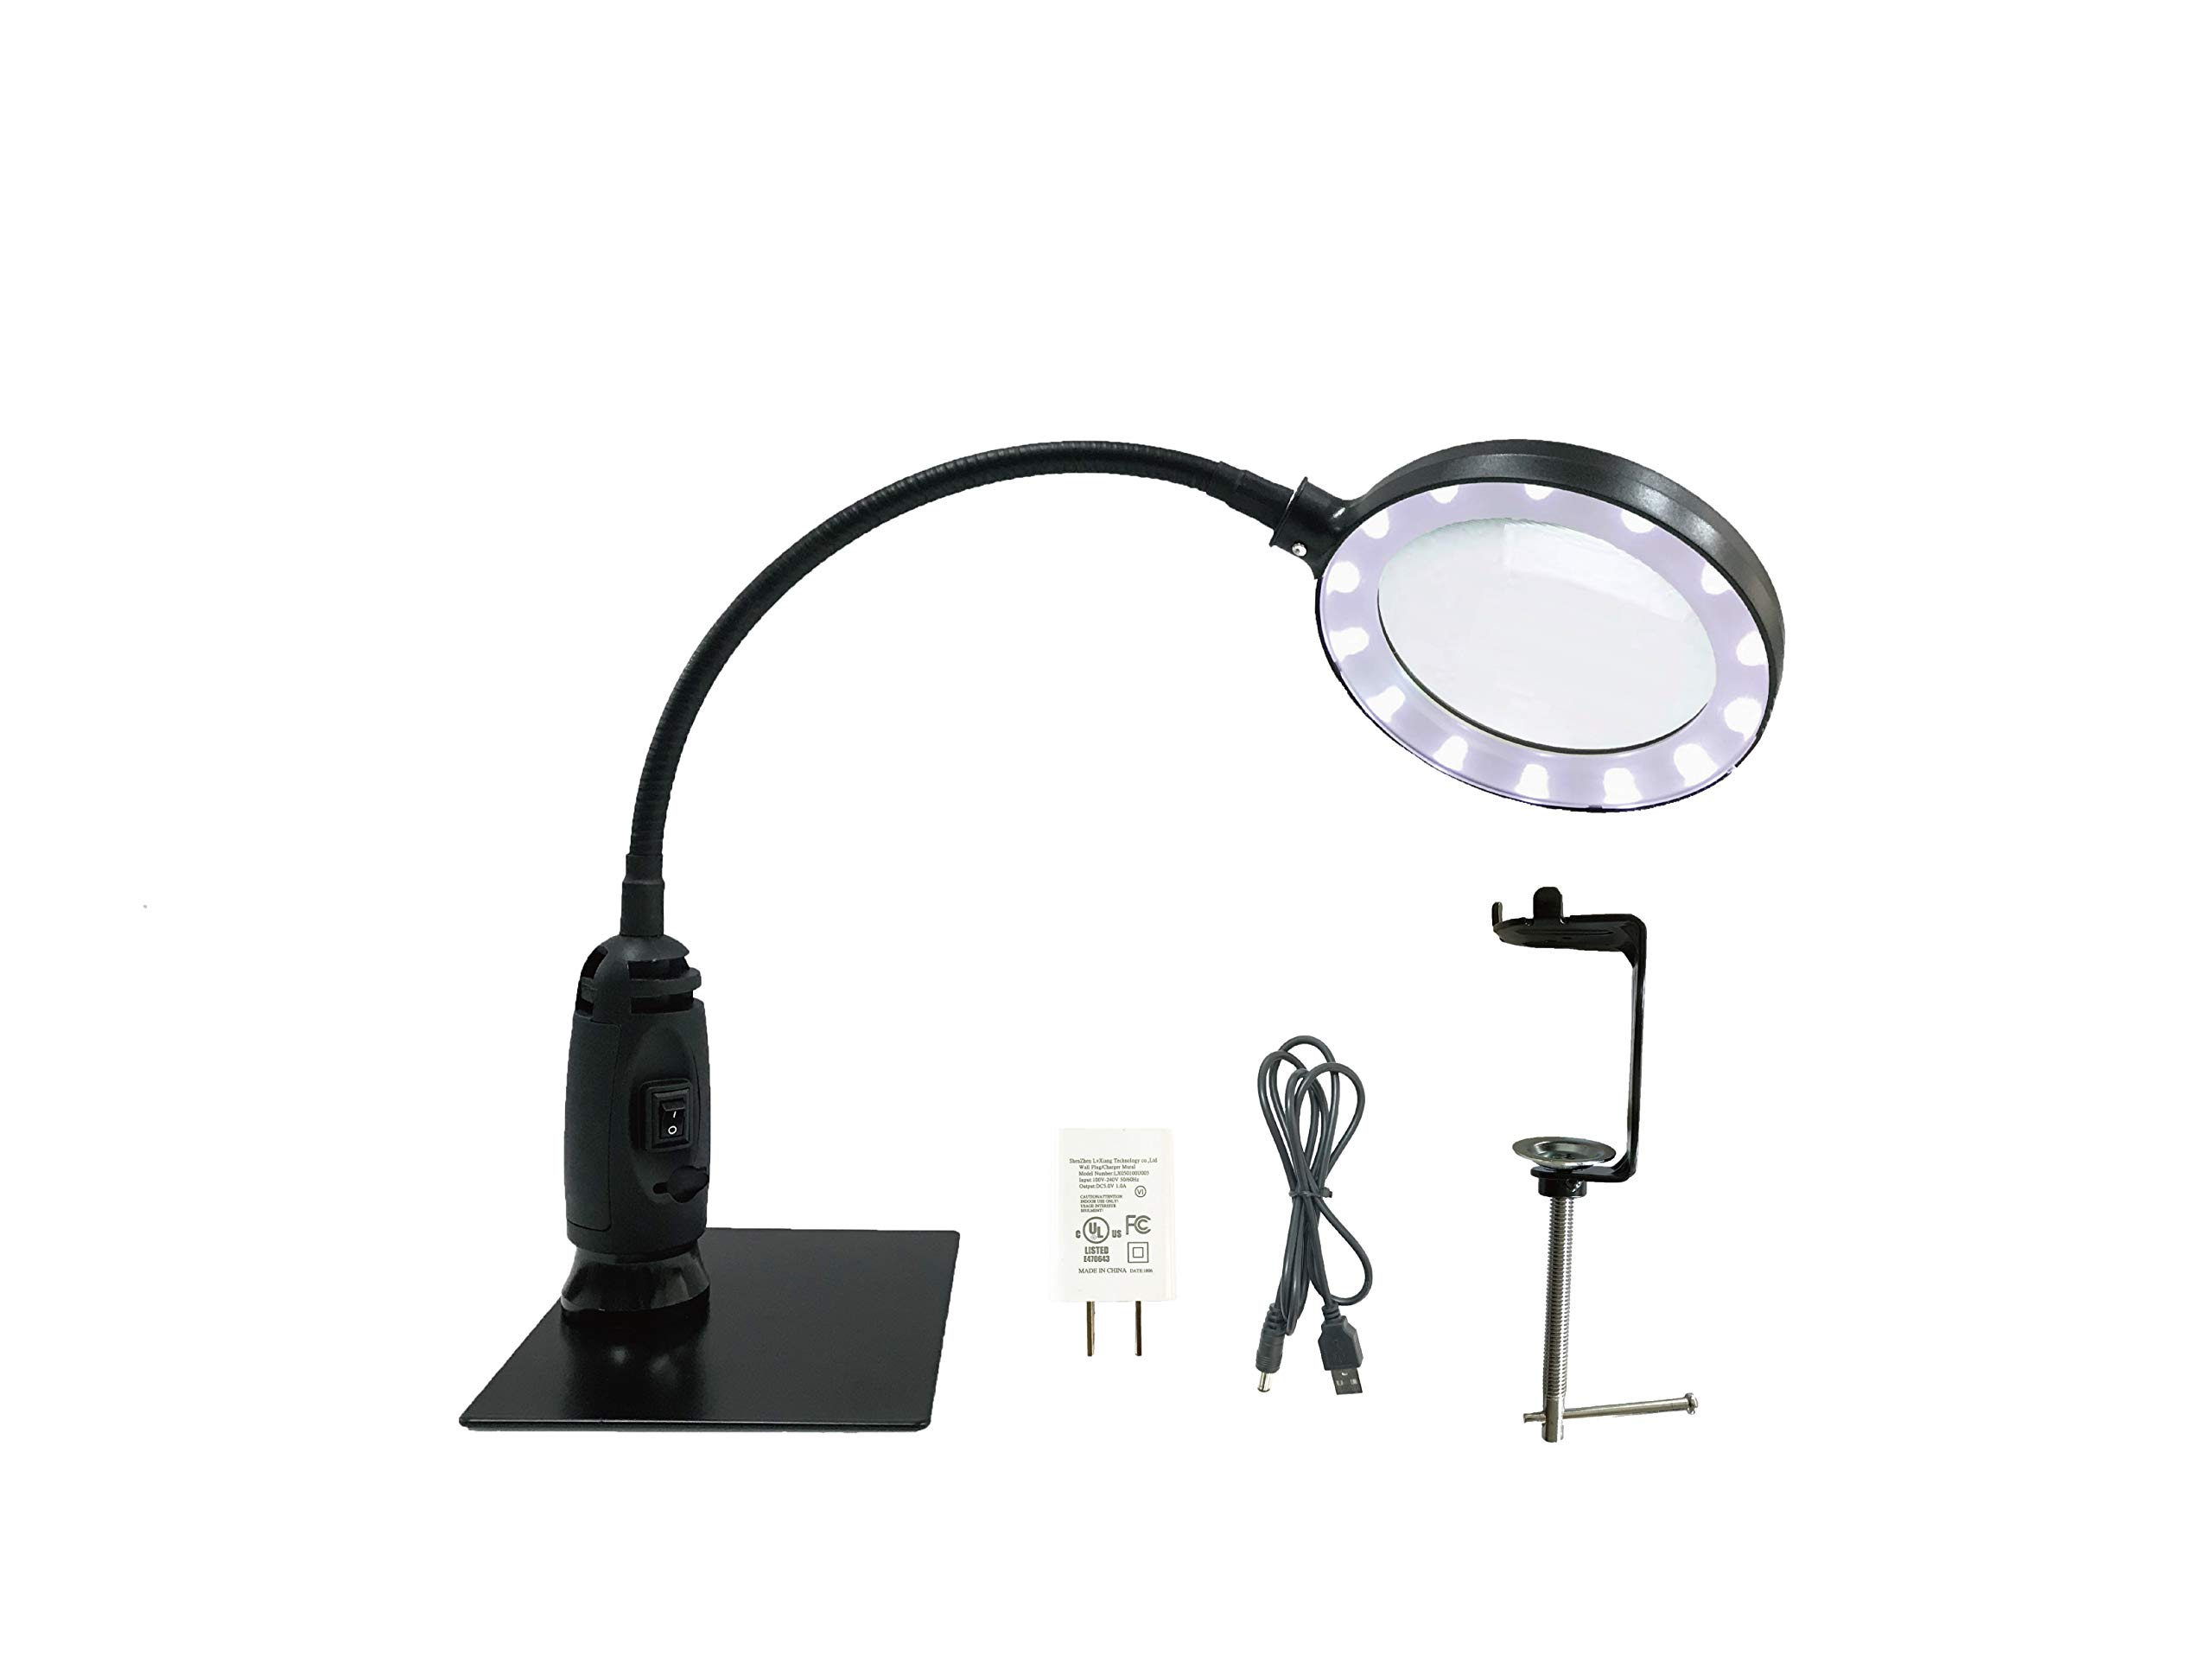 Benter Magnifying Glass Lamp, AC and USB Power, 14 LED Light, Iron Sheet and C Clamp,Clamp - for Desk, Sewing, Lighted Magnifier with Stand,